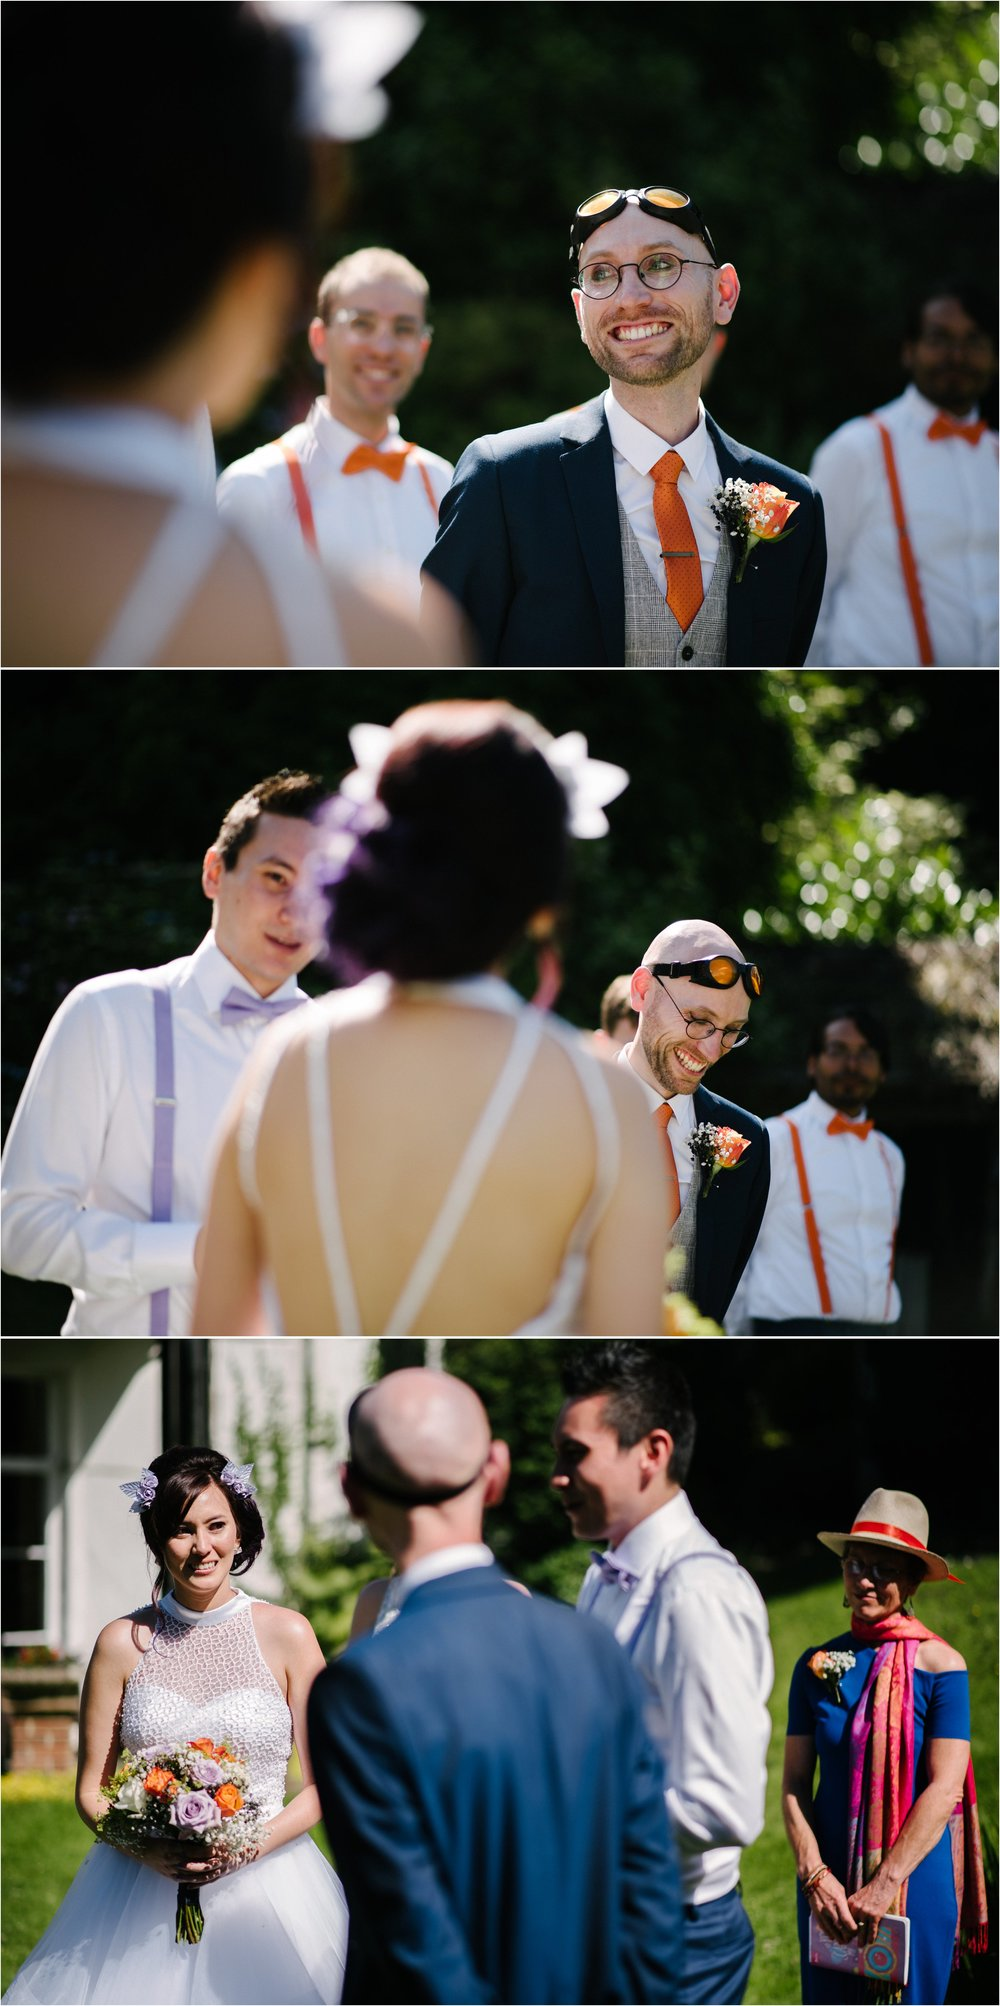 Devon wedding photographer_0143.jpg